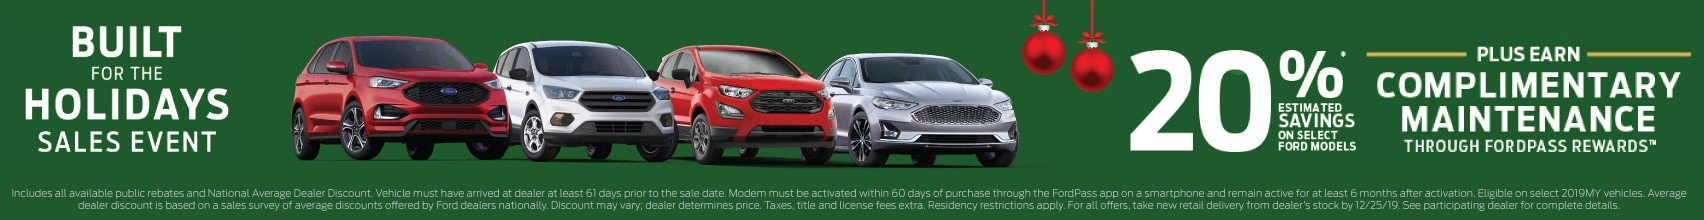 2019 Ford Black Friday Offer 12-25-2019